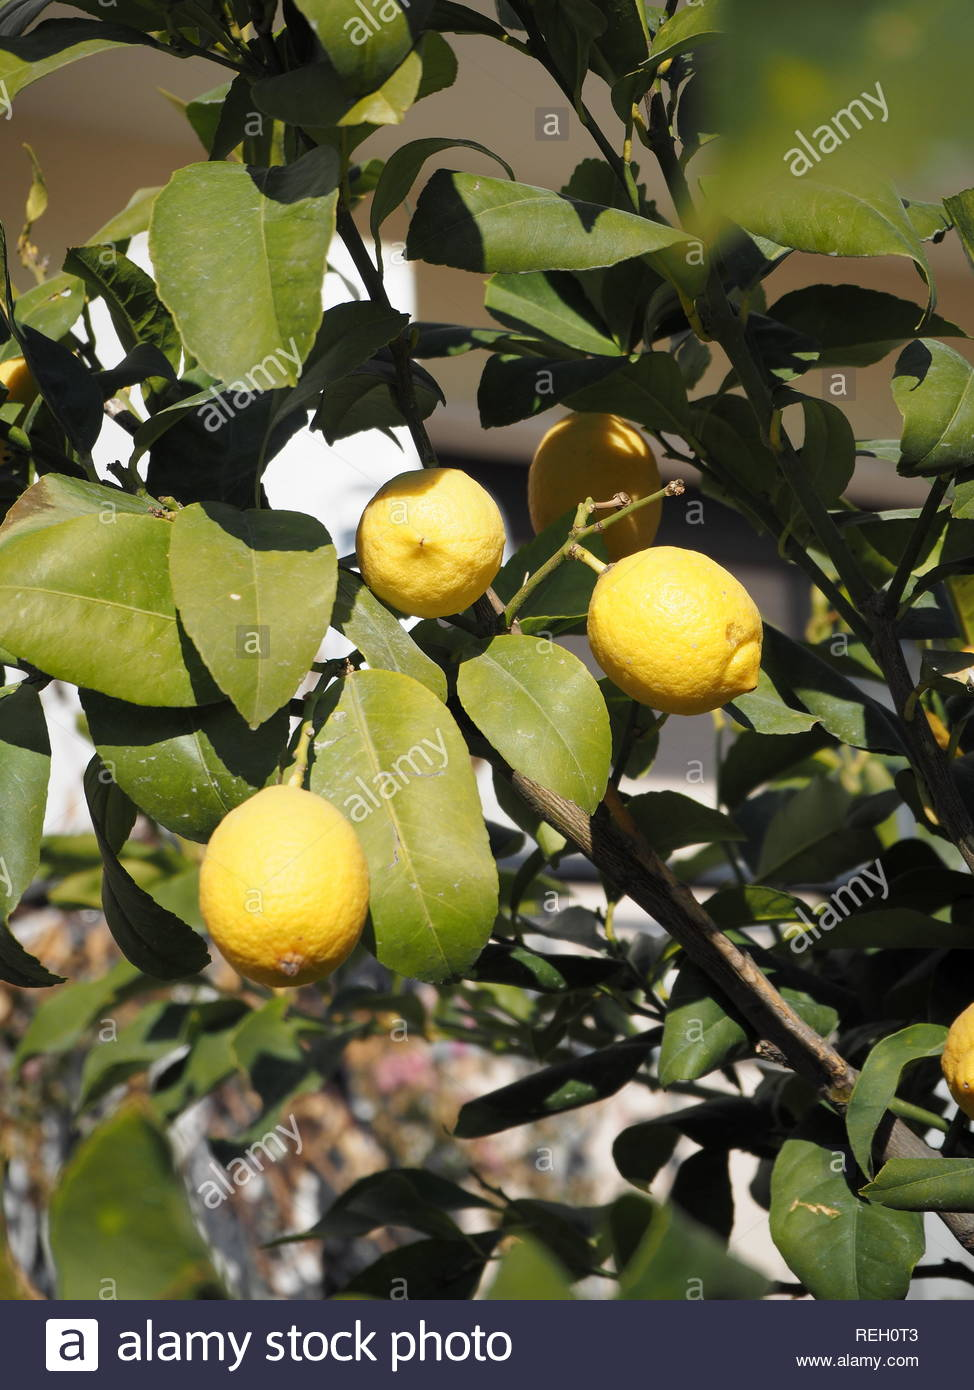 Close up of lemons on a Lemon tree - Stock Image